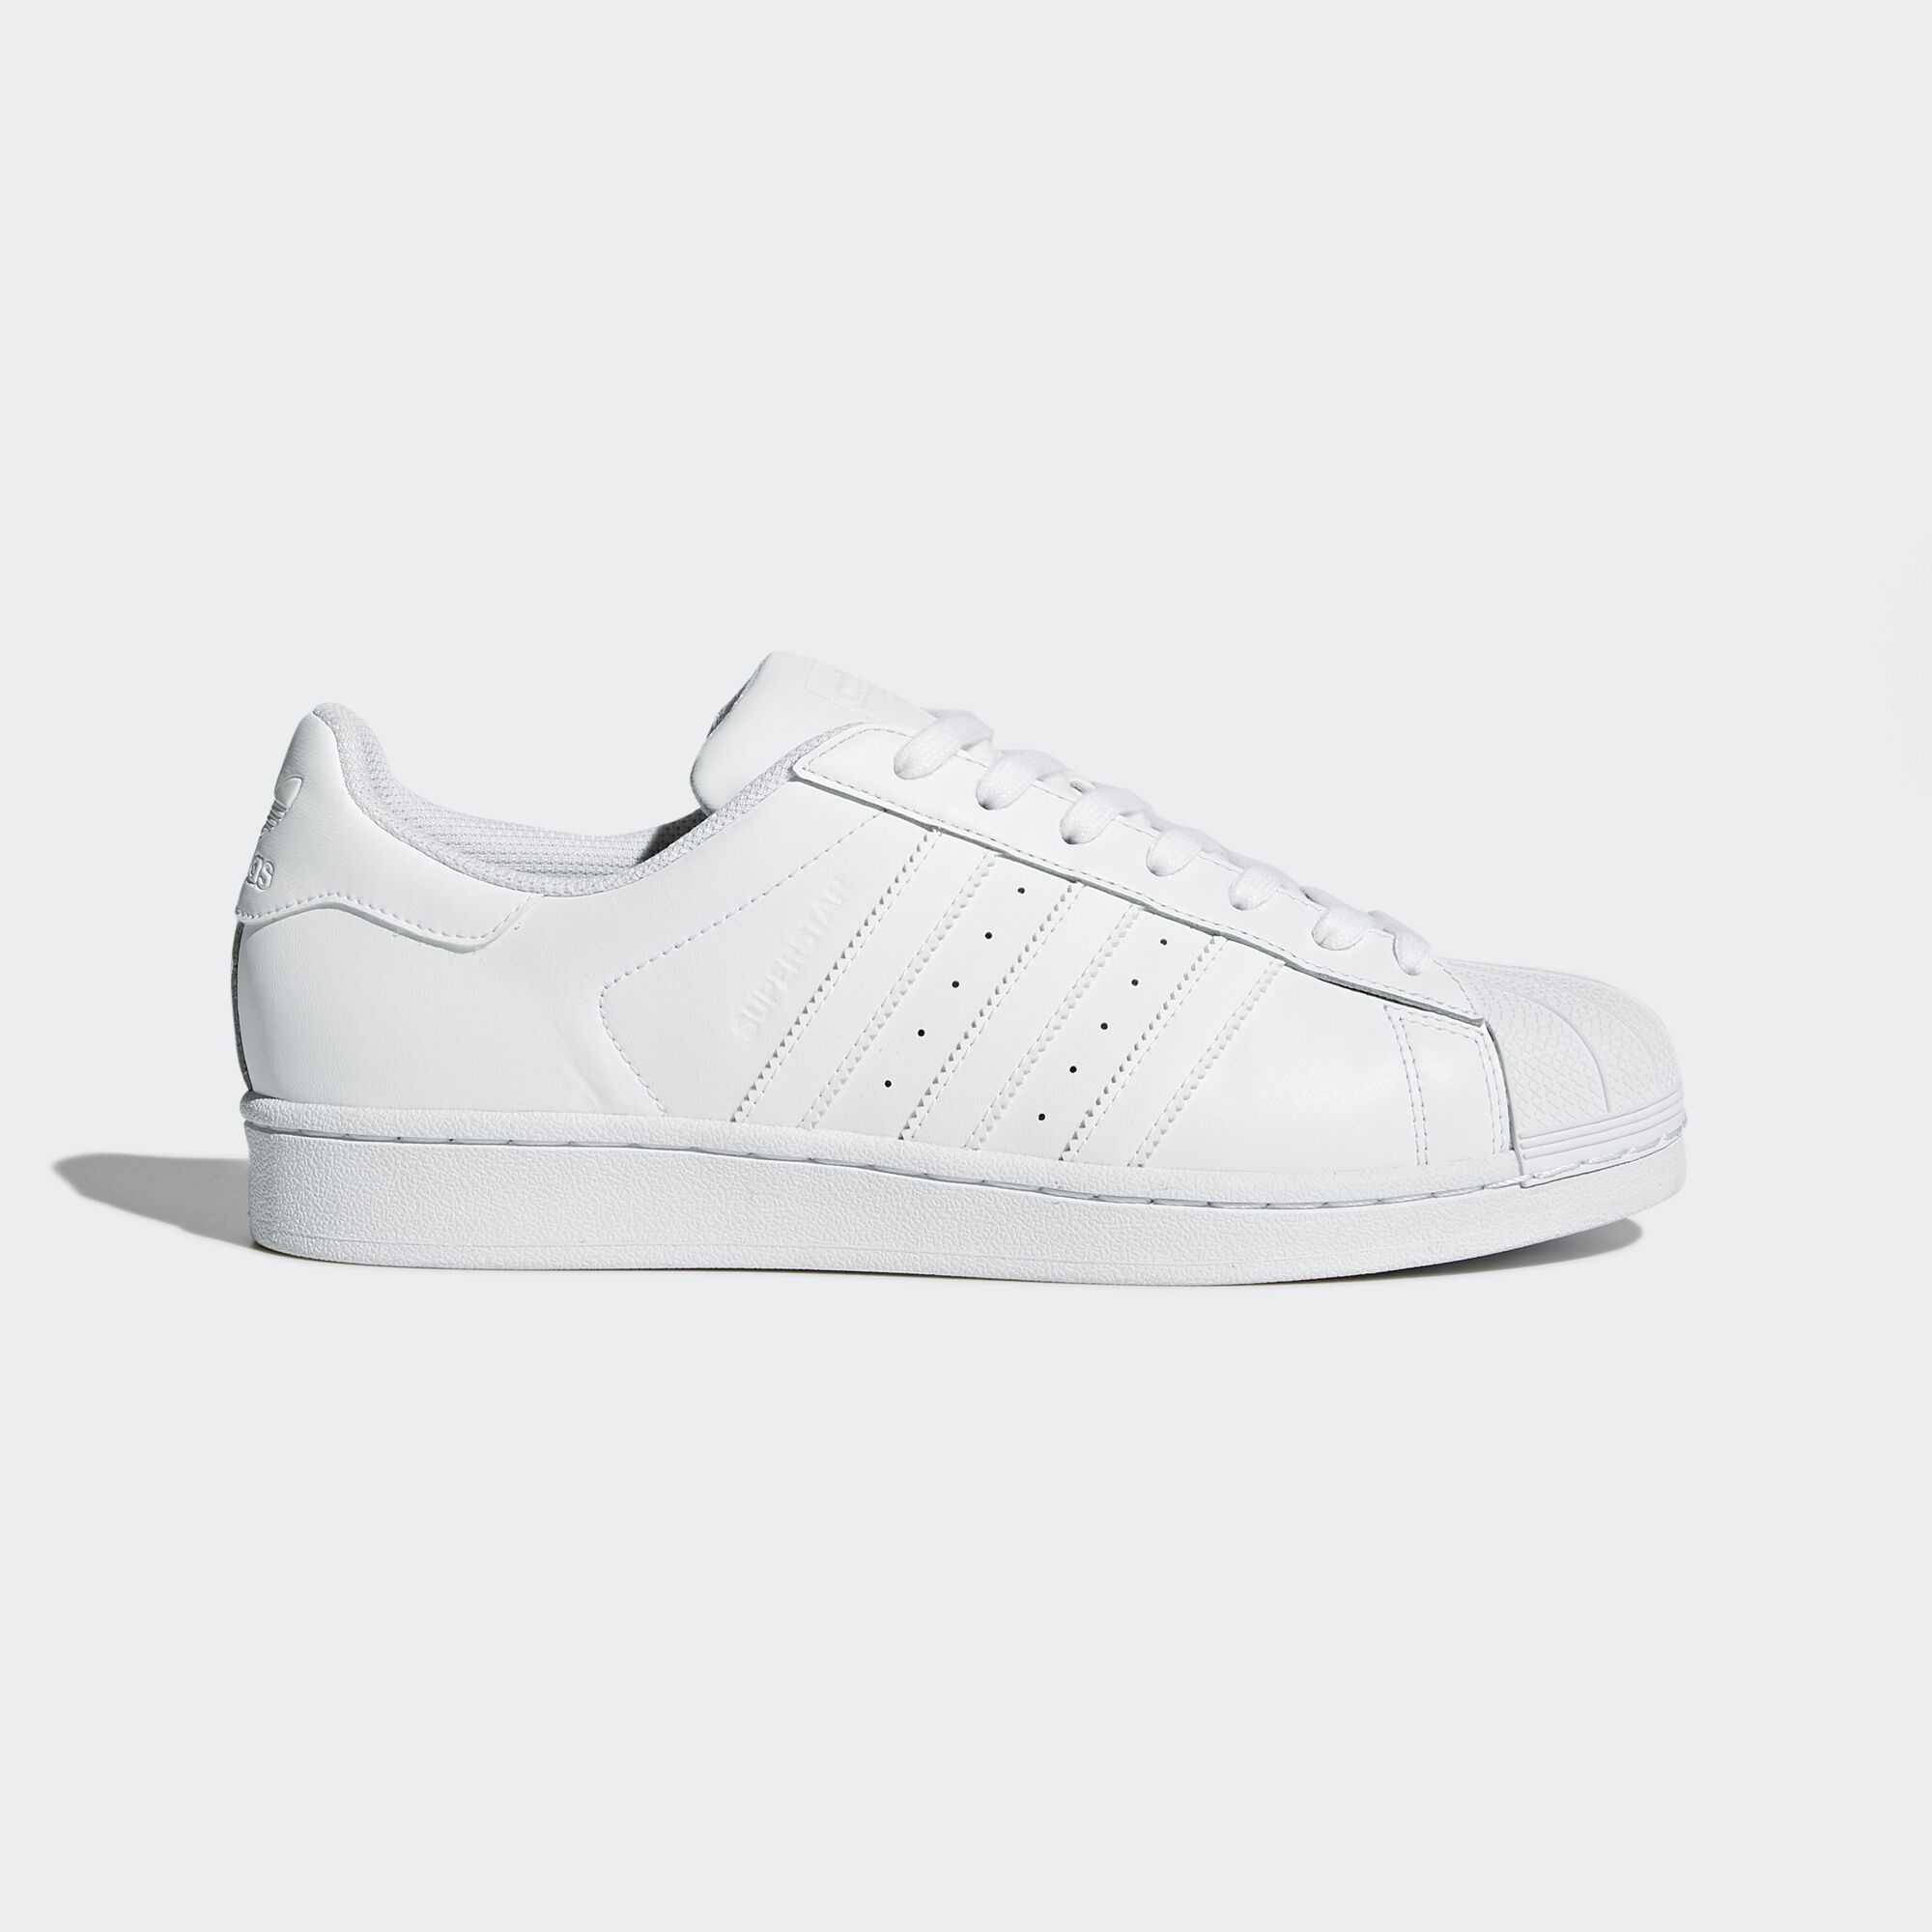 image: adidas superstar [18]